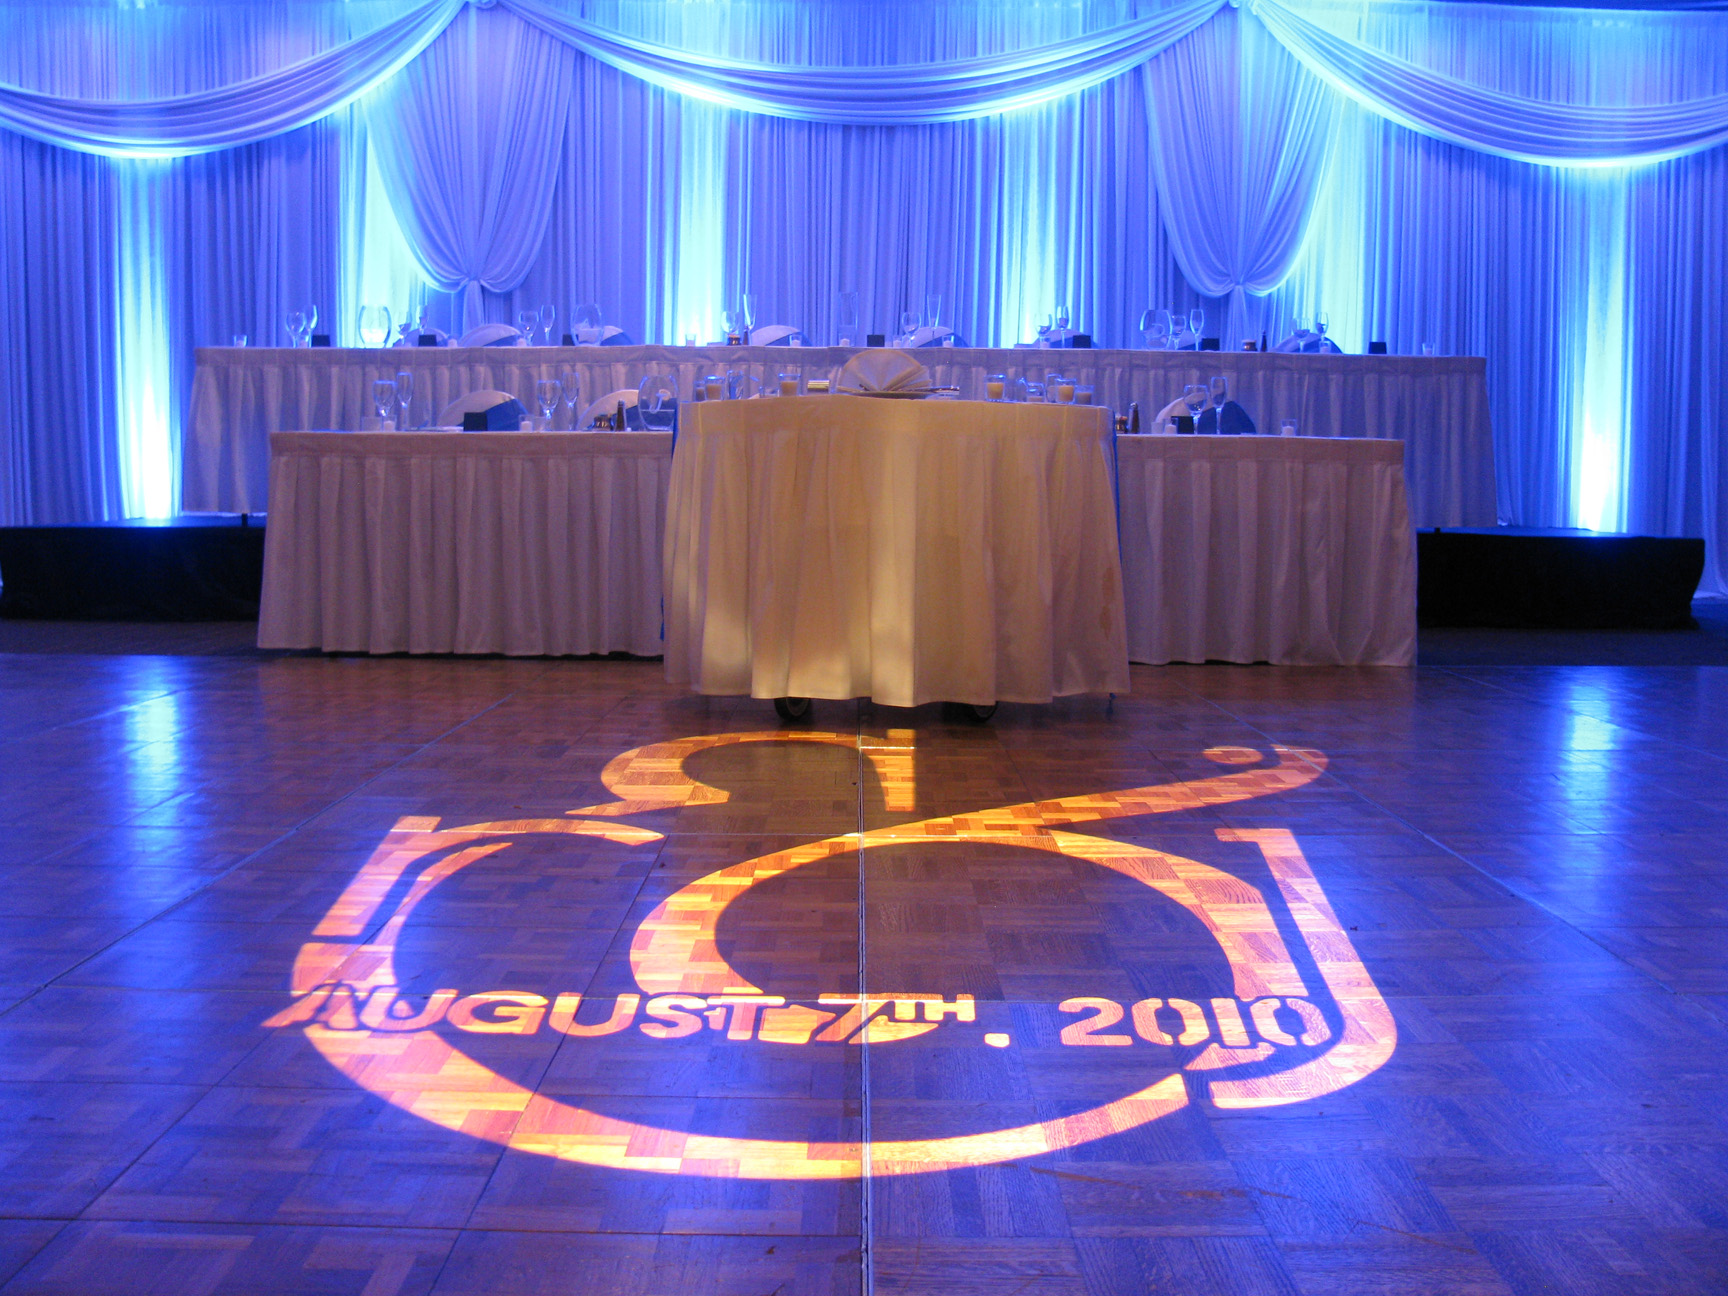 Head Table I Like The Cake Behind The Head Table So You: Head Table Backdrops With Swag